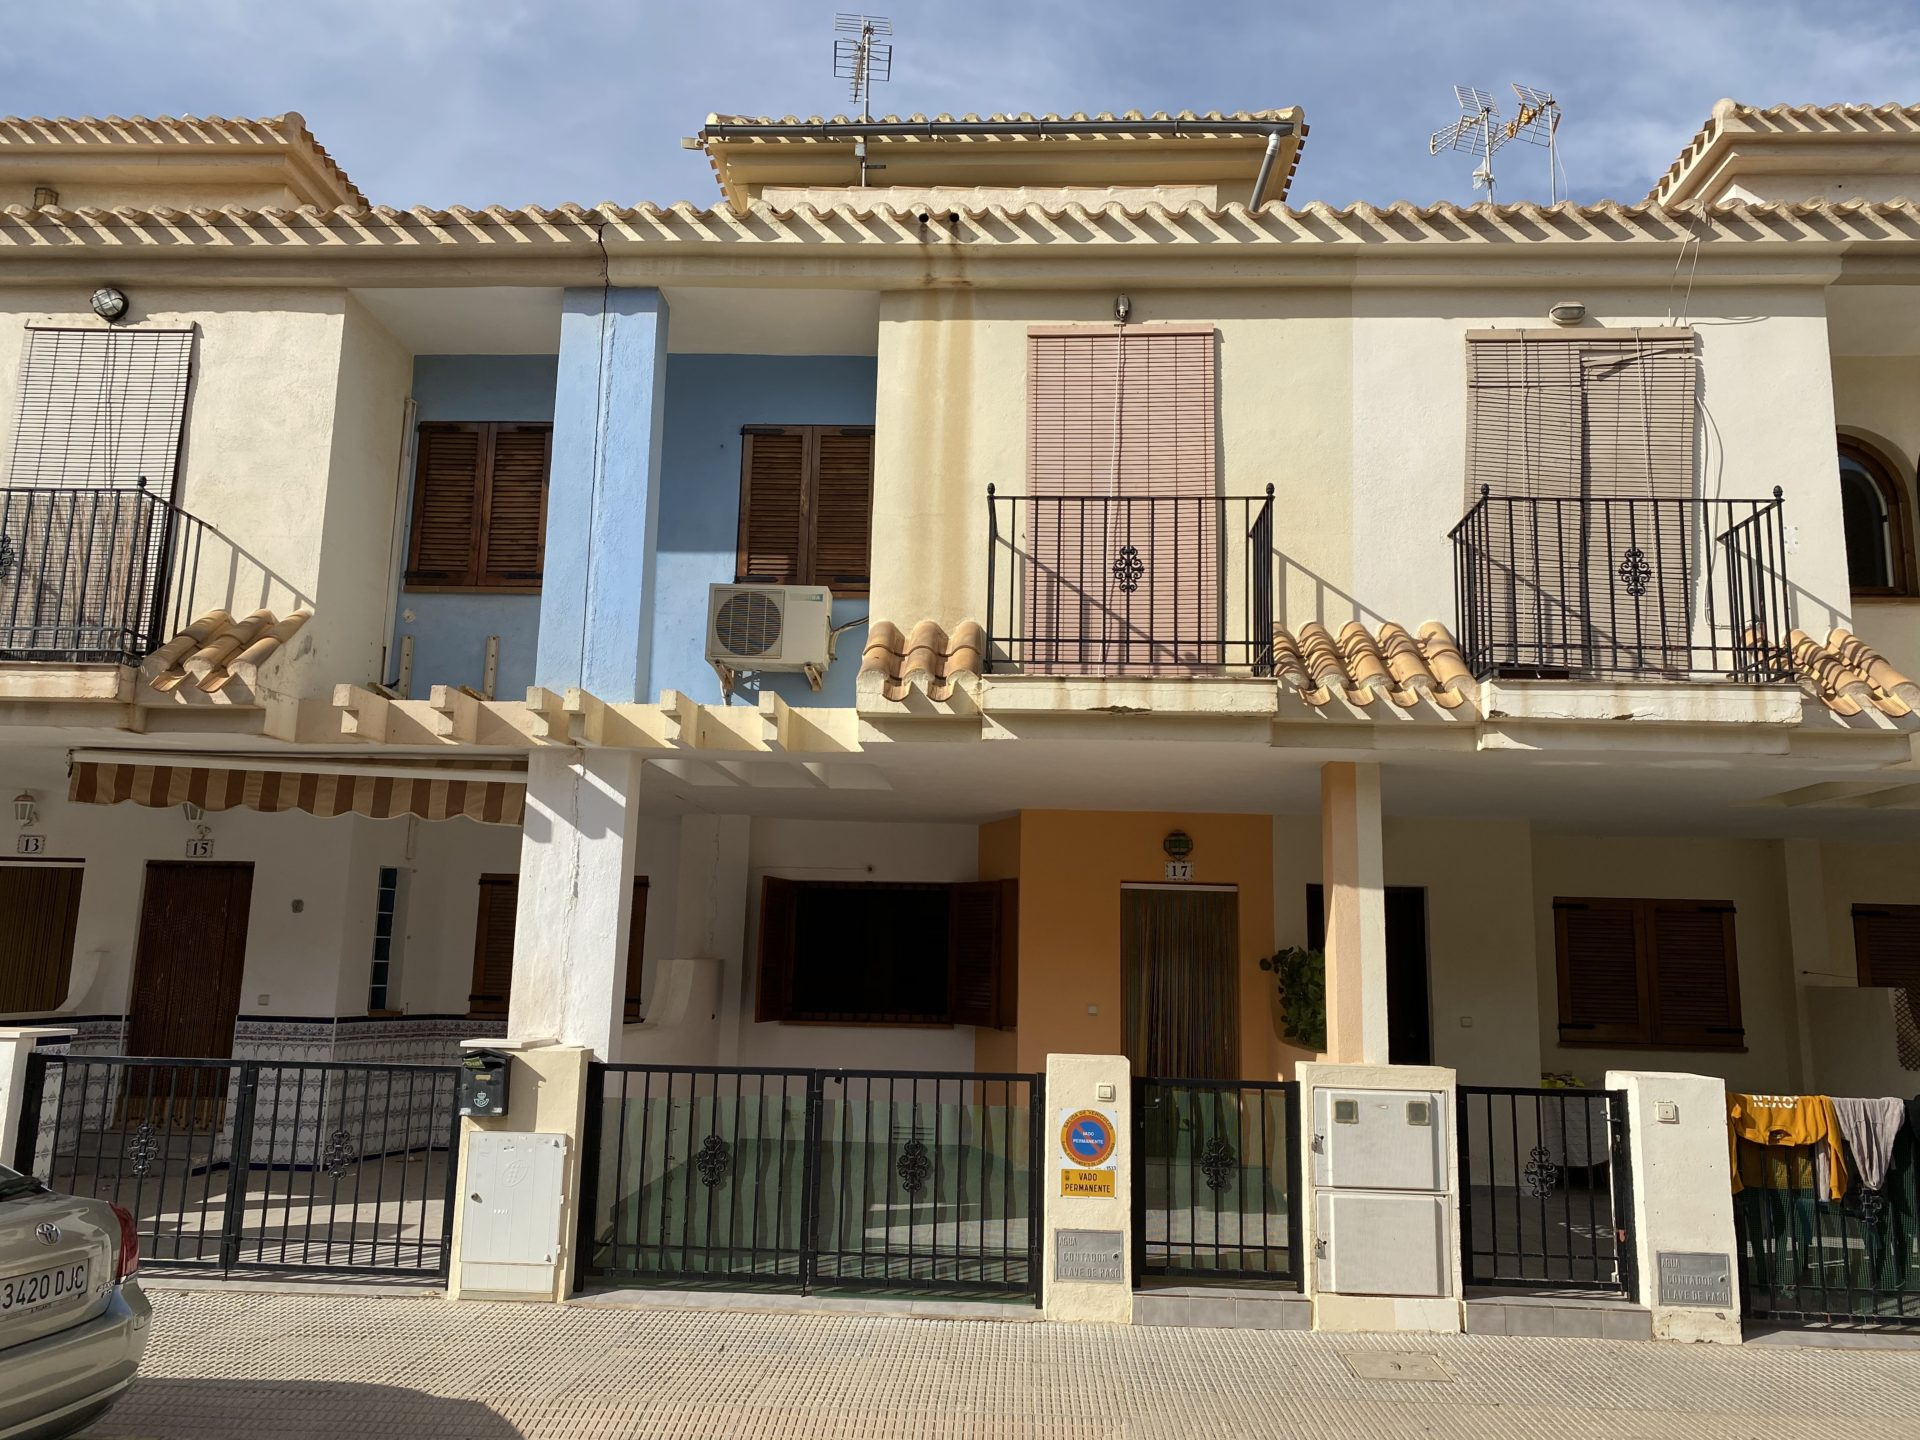 4 Bedroom Townhouse - Los Alcazares 1